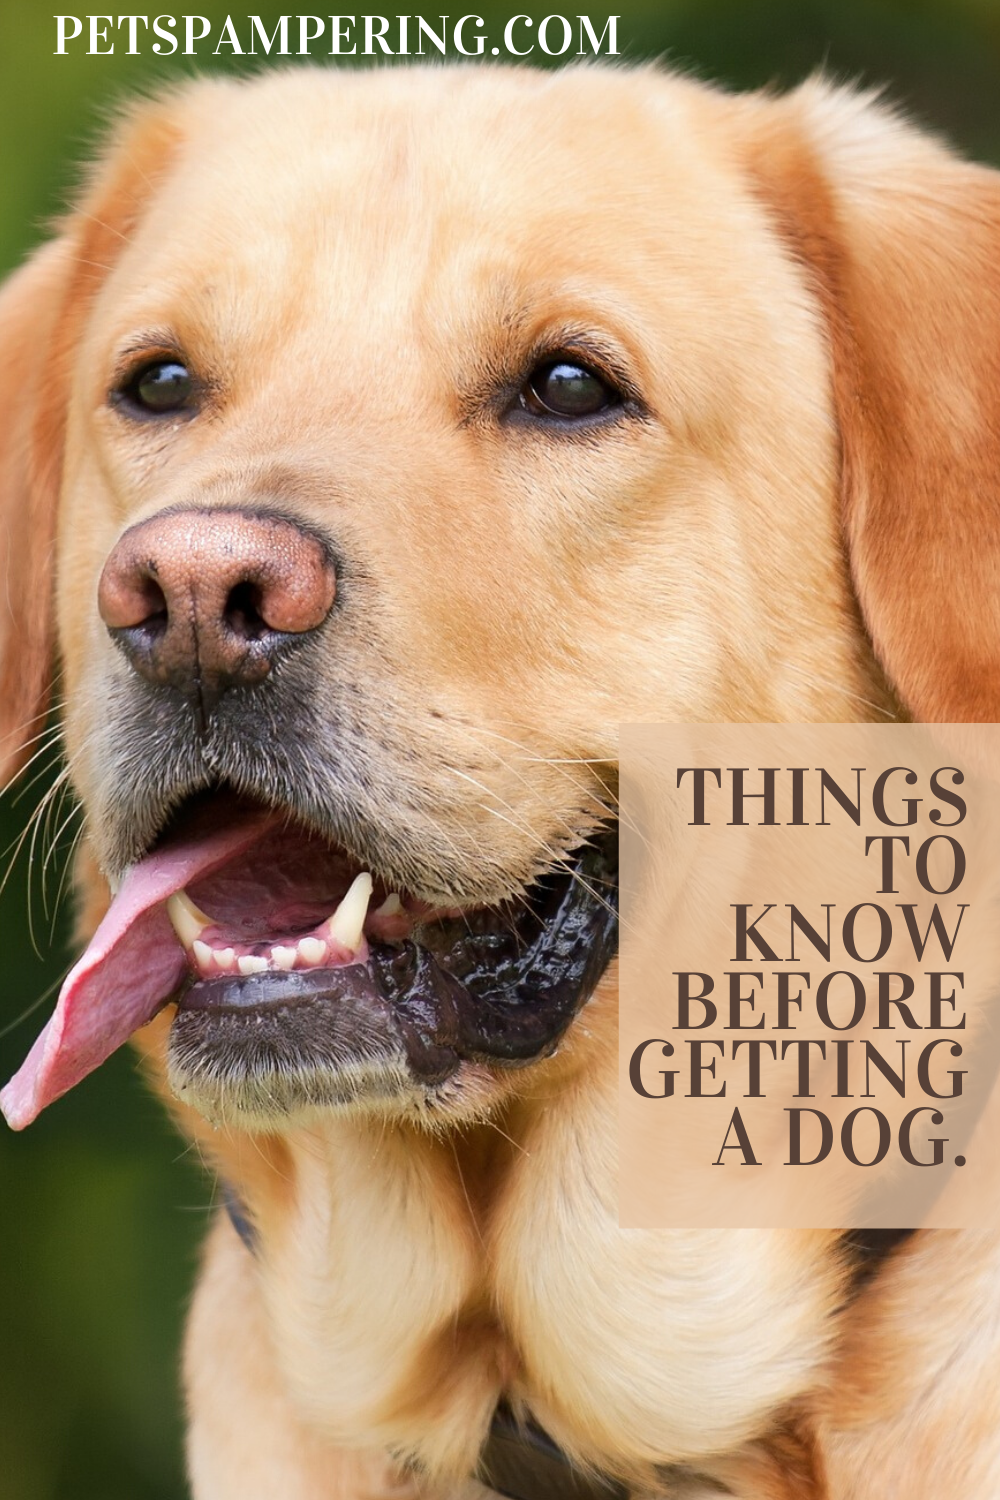 In this post I will discuss essential dog needs other than food and water that are equally important and also share with you people required products that every dog owner should have to fulfill their dog's needs. #dogsofinstagram #dogs #dogstagram #dogsofinsta #dogsofig #dogsitting #dogslife #dogsofinstaworld #dogscorner #dogsofinstgram #dogsandpals #dogslover #dogstyle #dogsarefamily #dogselfie #dogsofnyc #dogsrule #dogsonadventures #dogsoninstagram #dogsofcanada #dogsoflove